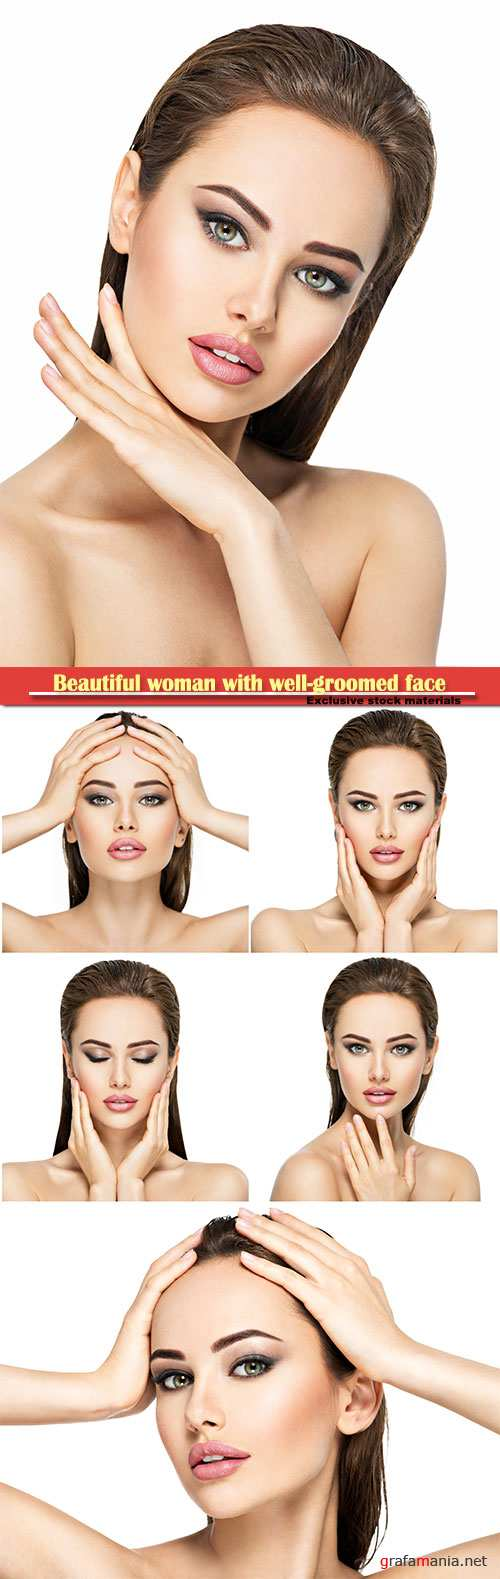 Beautiful woman with beautiful well-groomed face